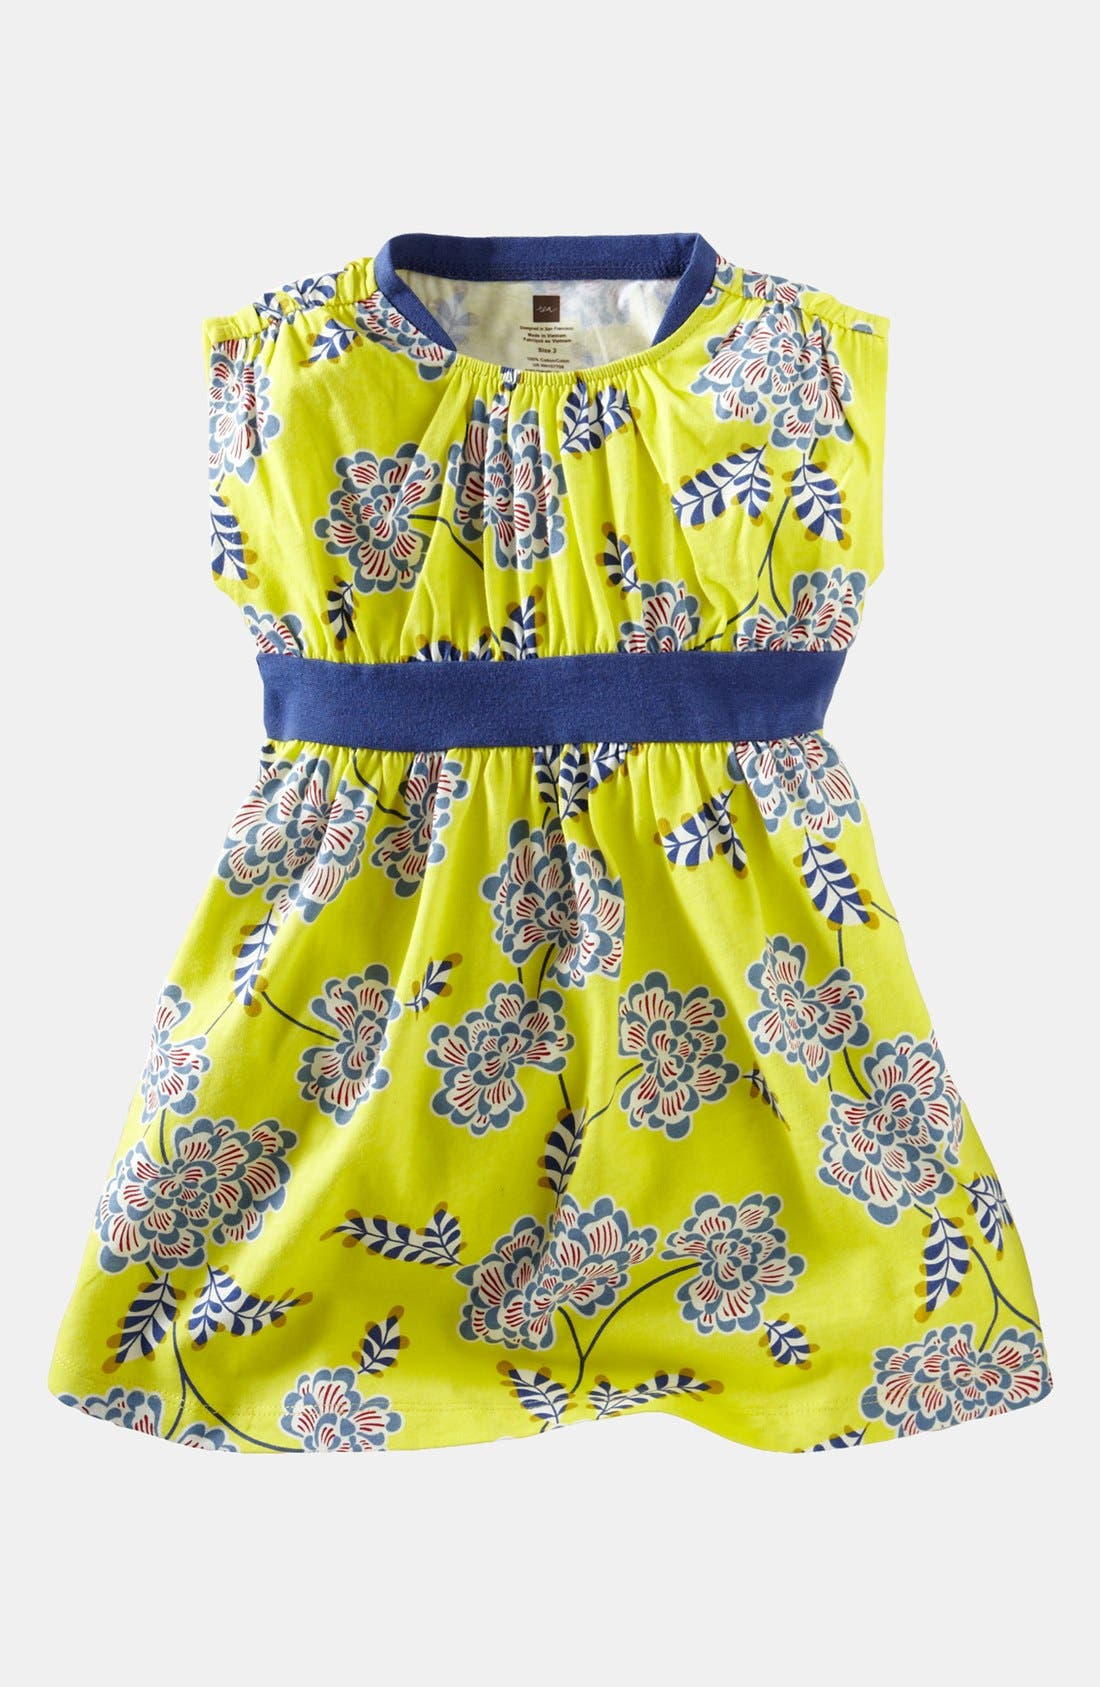 Alternate Image 1 Selected - Tea Collection 'Chrysanthemum' Banded Dress (Baby Girls)